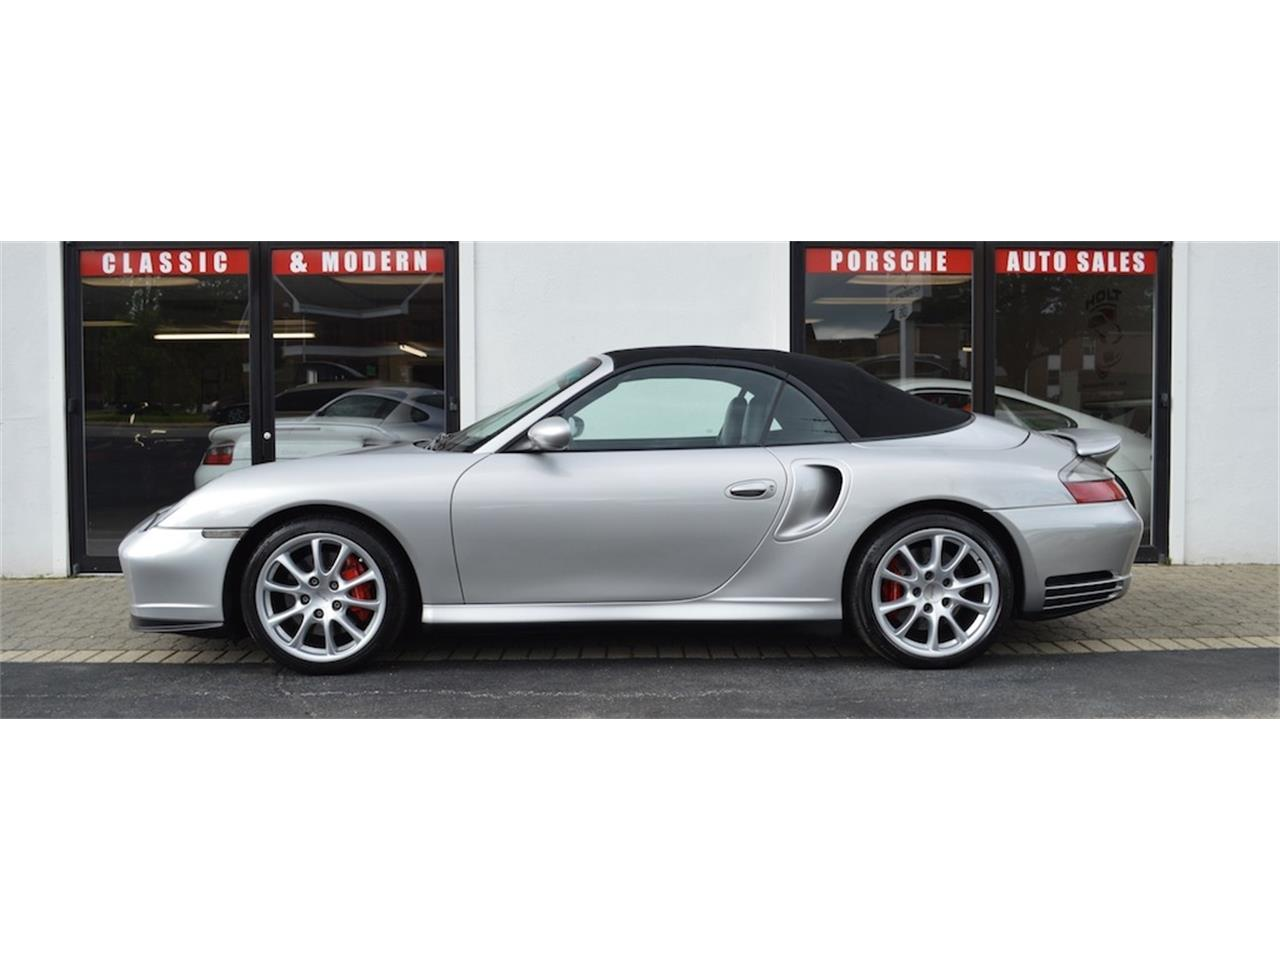 Large Picture of 2004 Porsche 996 Turbo Cabriolet located in West Chester Pennsylvania - $46,500.00 - NQV0